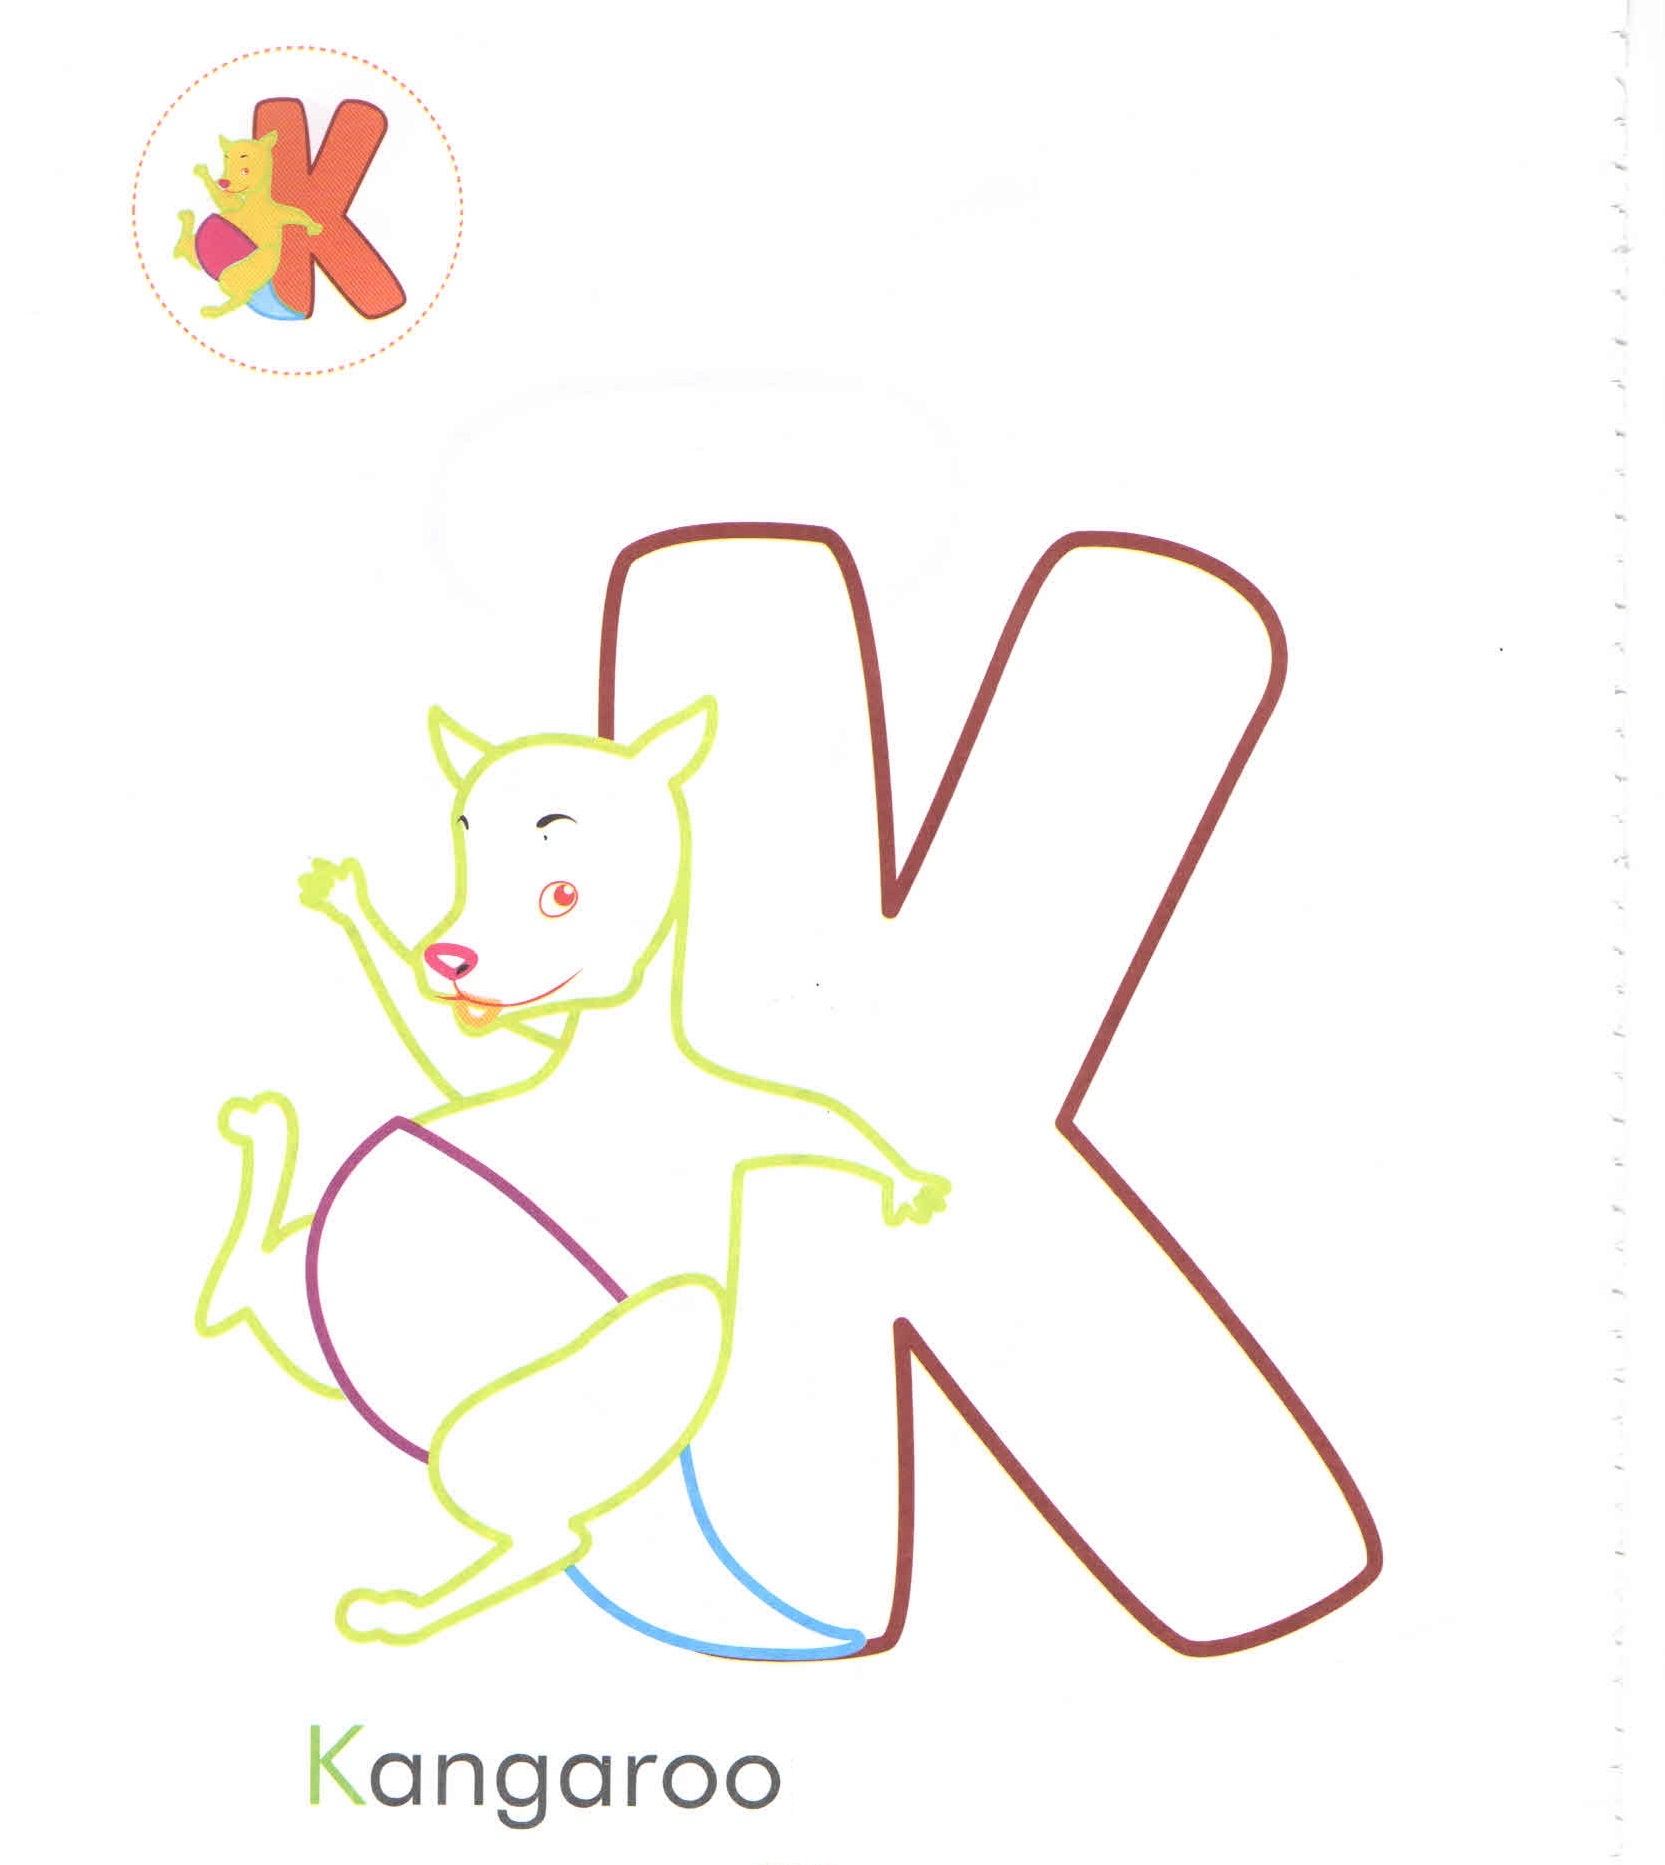 Alphabet Letter K Kangaroo Coloring Page For Preschool